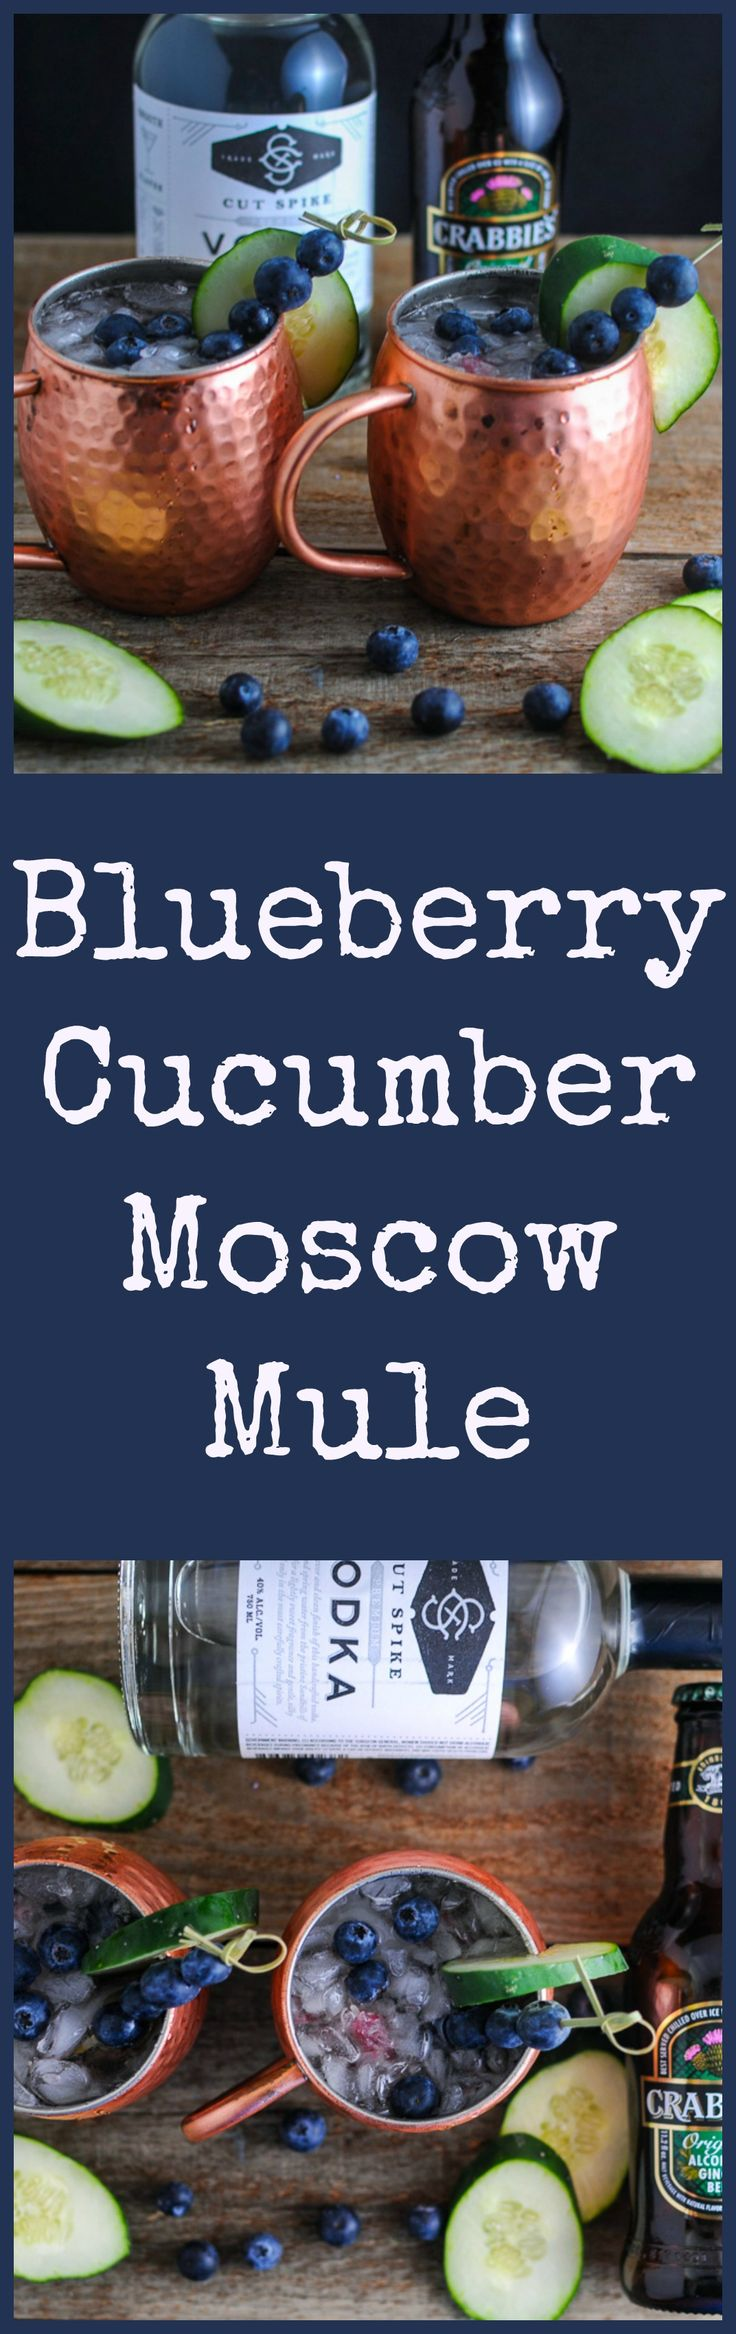 Blueberry Cucumber Moscow Mule - vodka, lime, ginger beer, cocktail #cocktail #vodka #ginger #blueberry